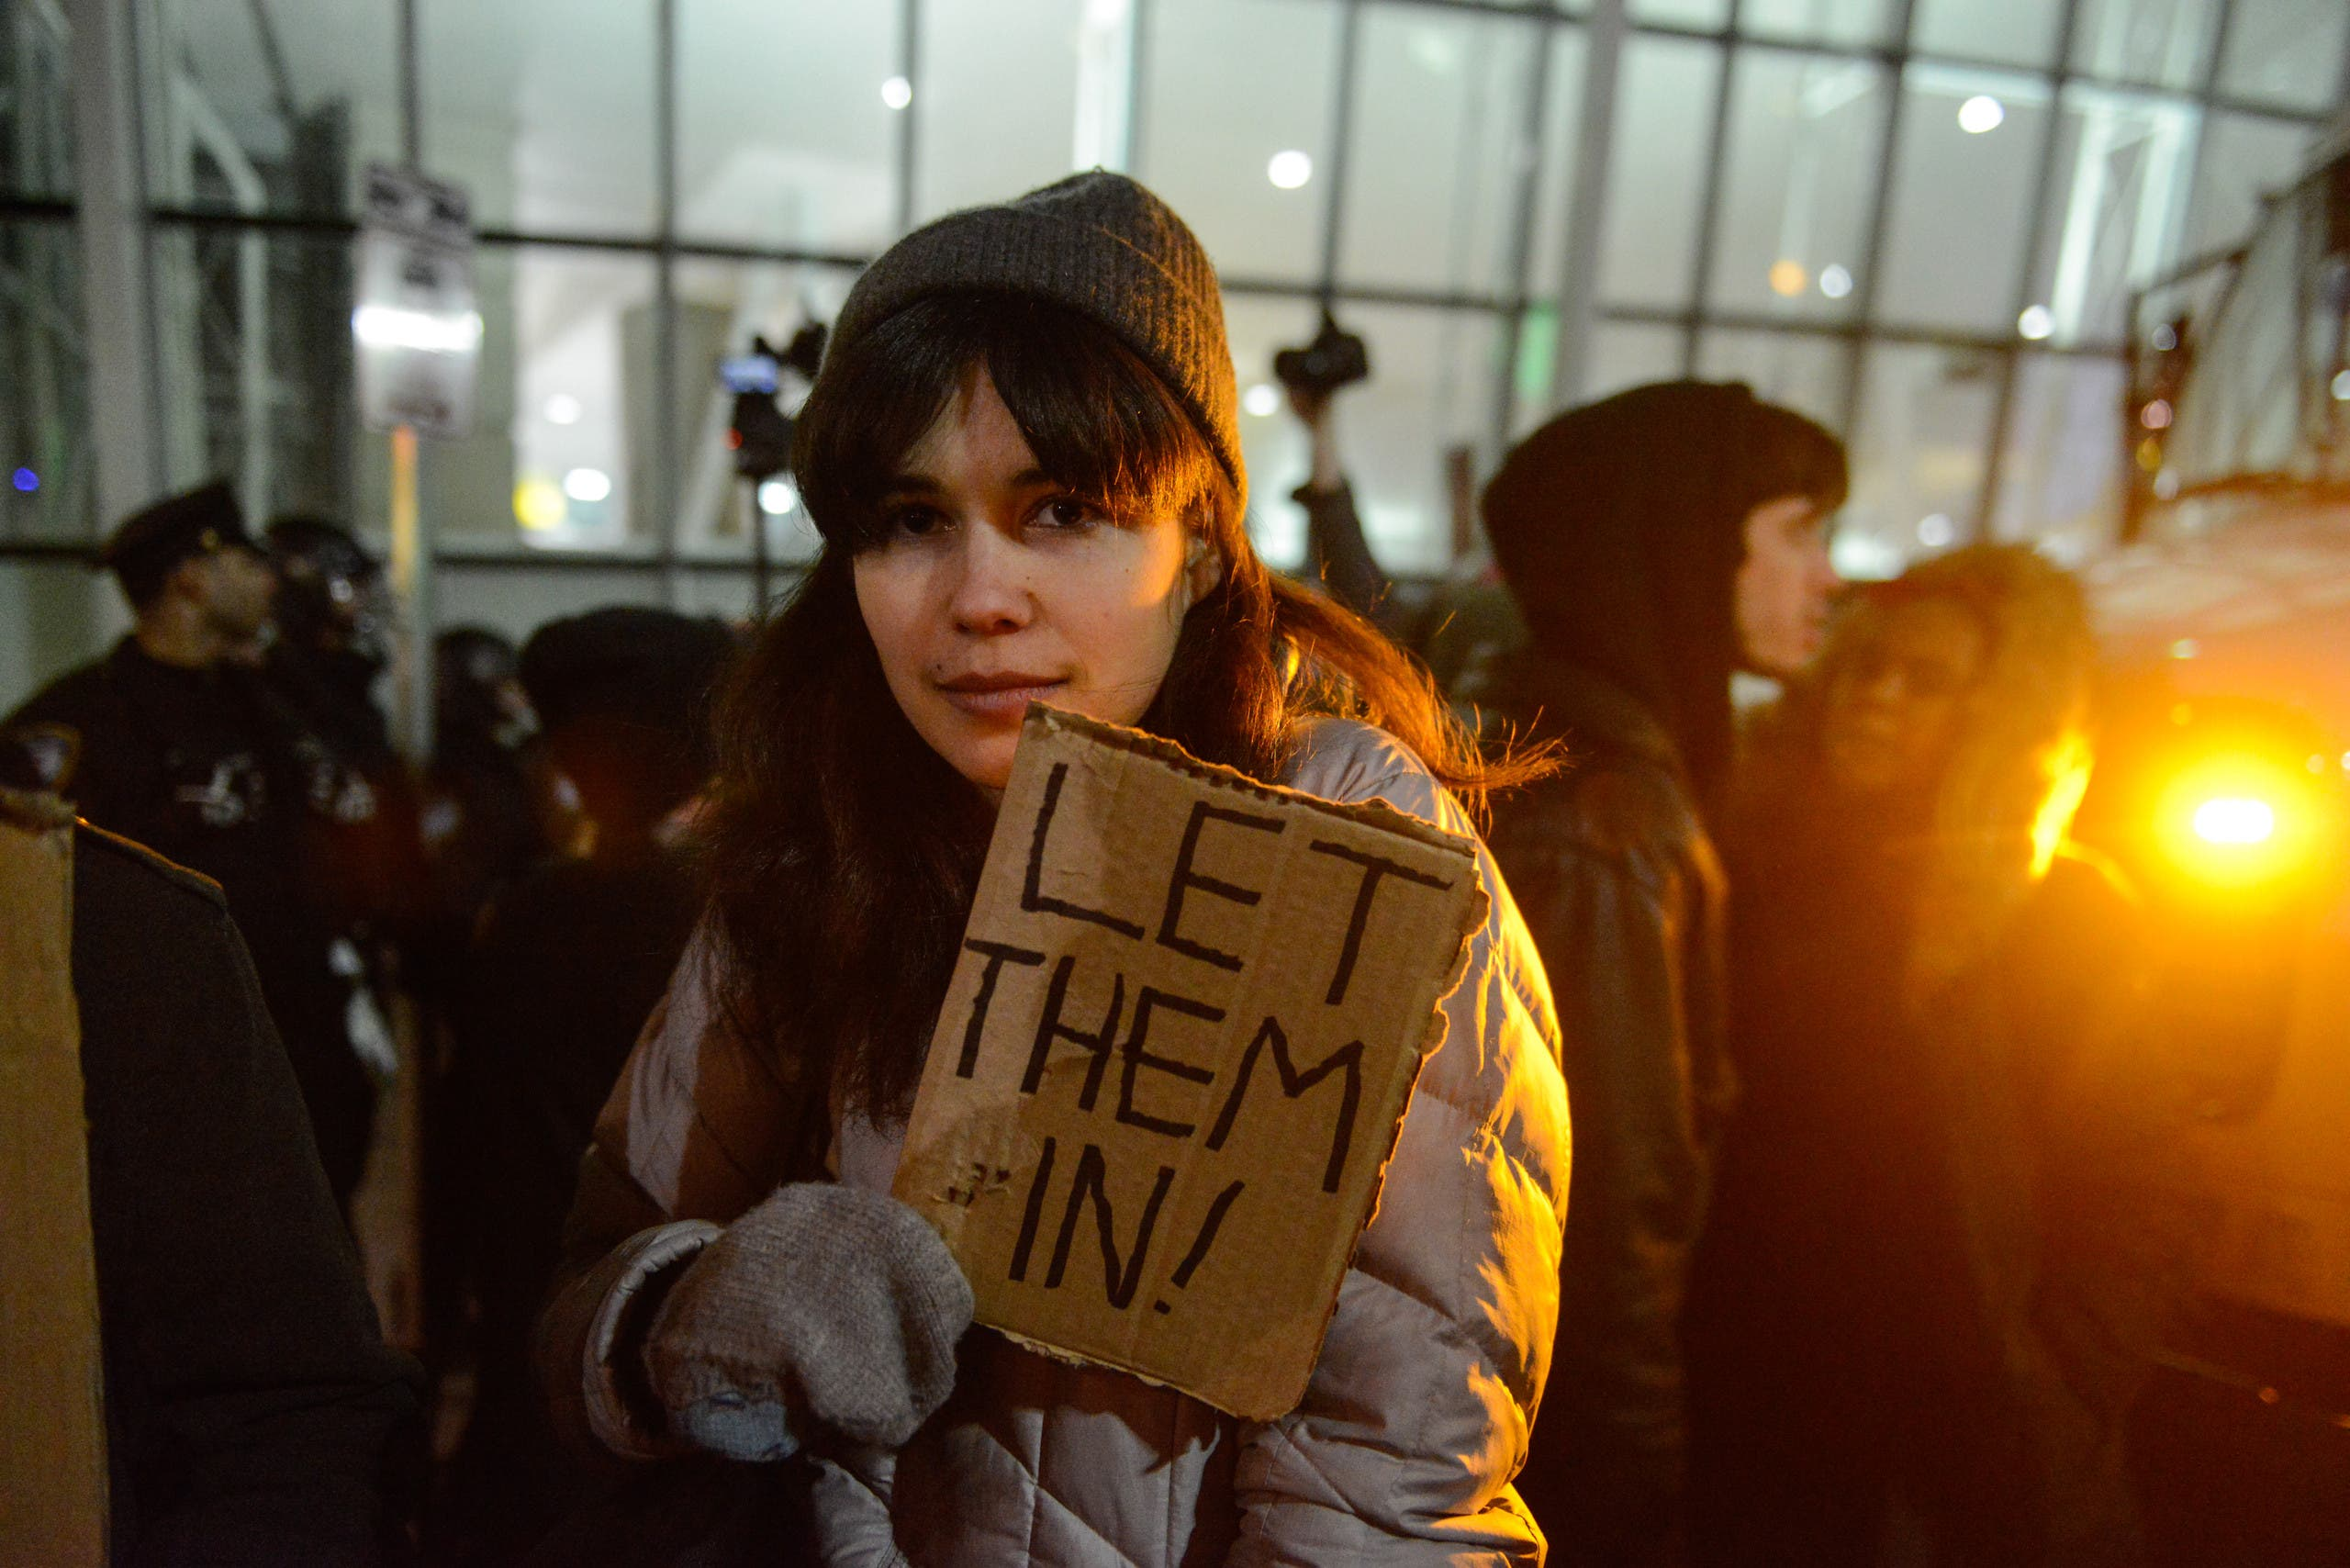 Protestors rally during a demonstration against the new immigration ban issued by President Donald Trump at John F. Kennedy International Airport on January 28, 2017 in New York City